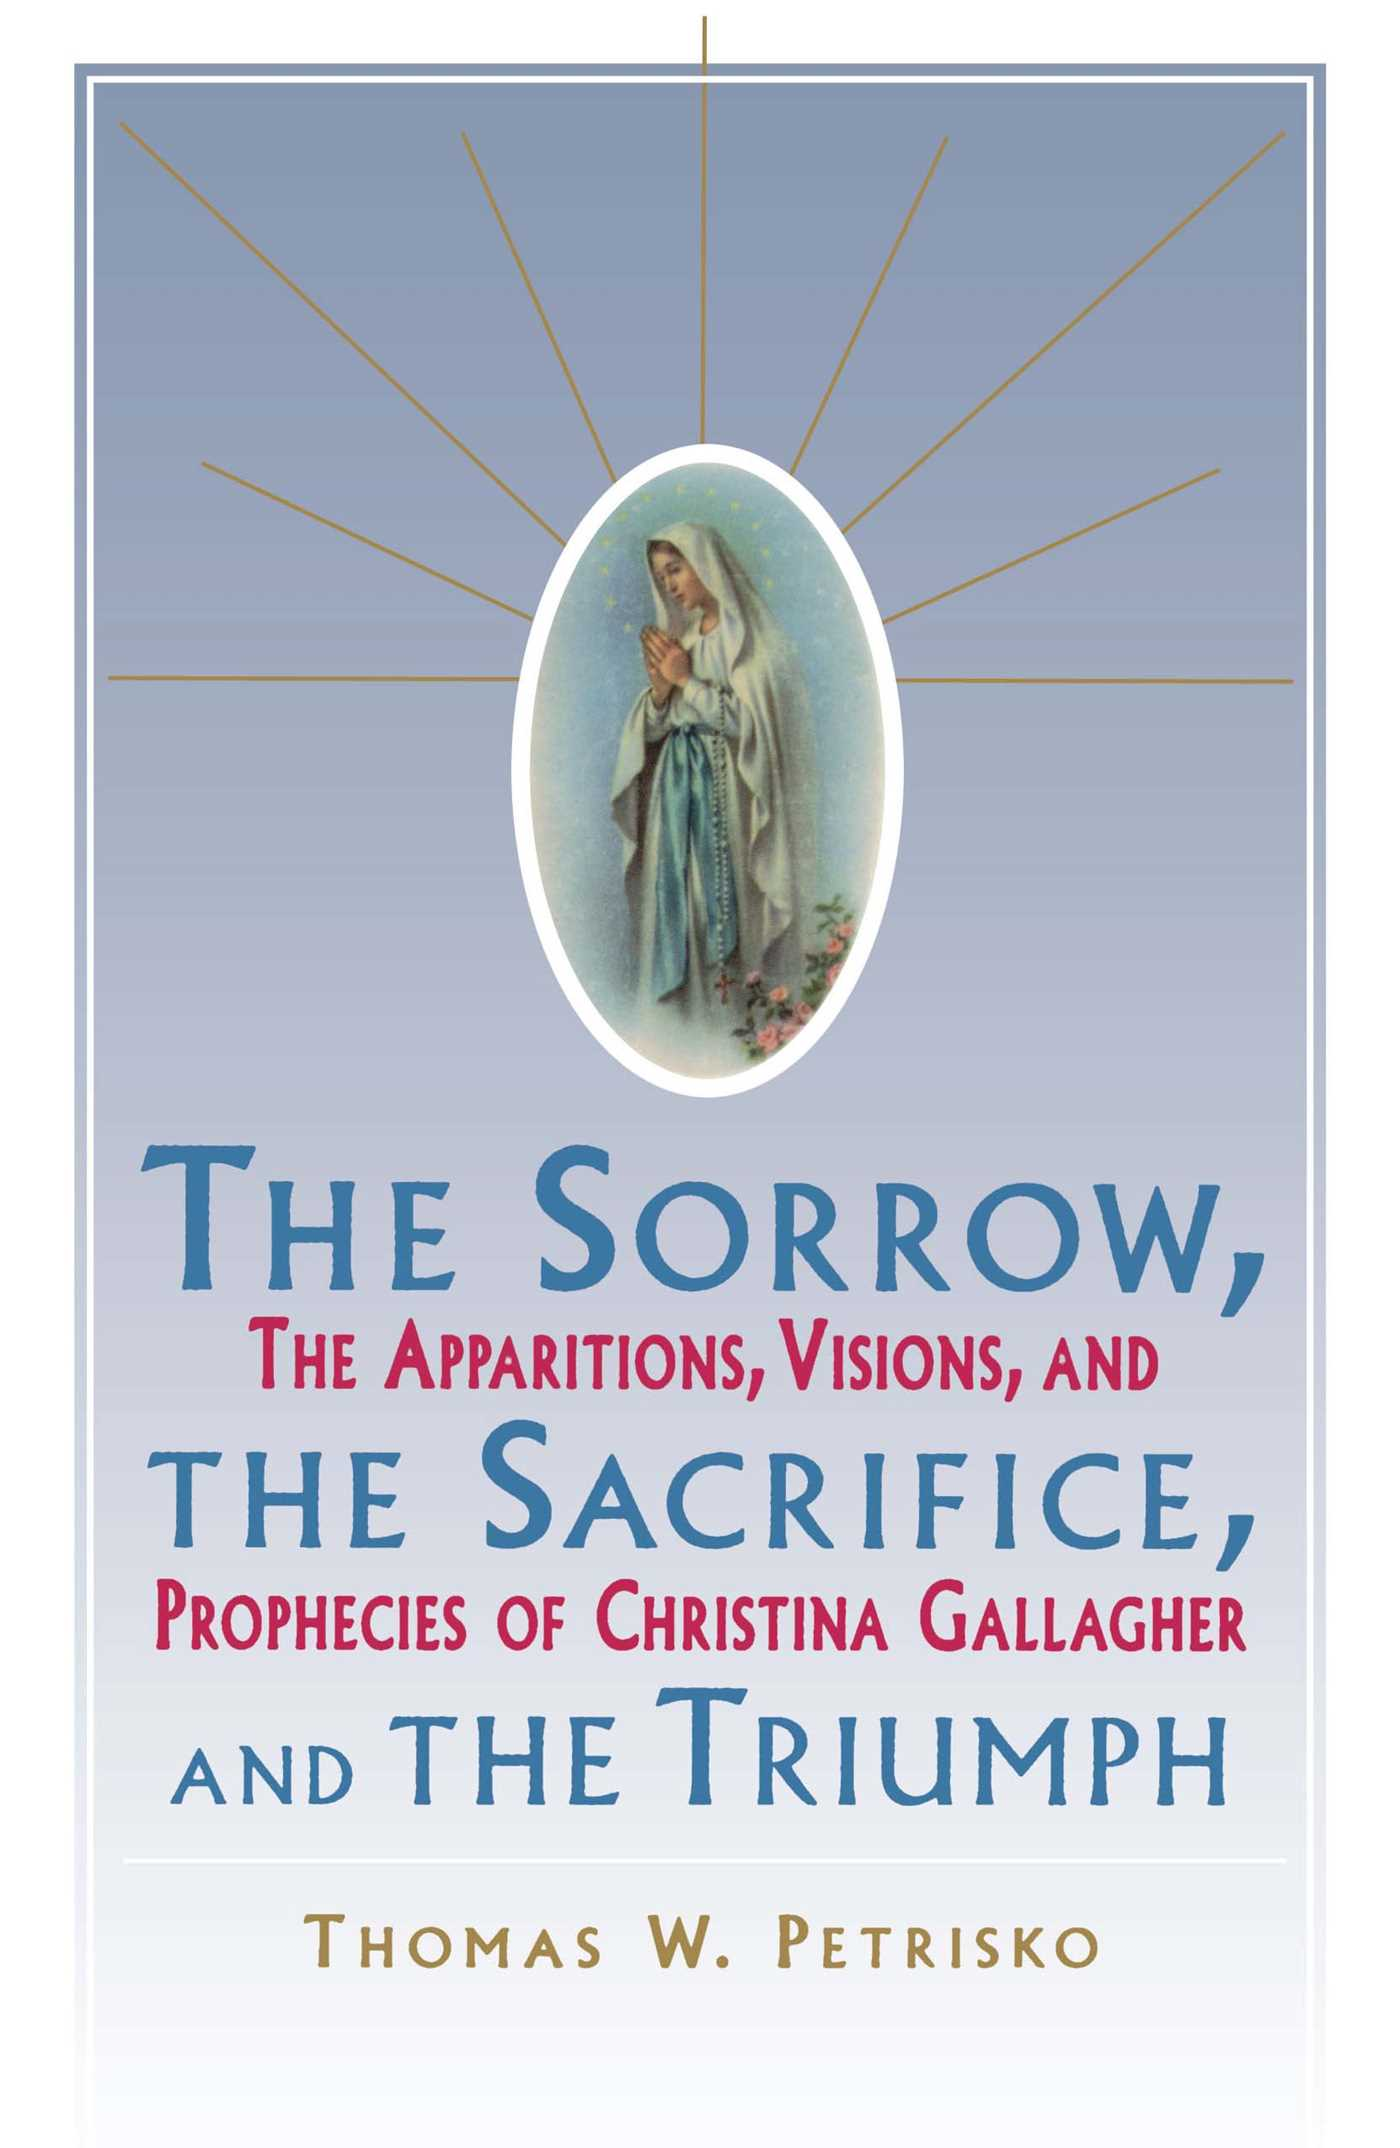 Sorrow the sacrifice and the triumph 9780684803883 hr